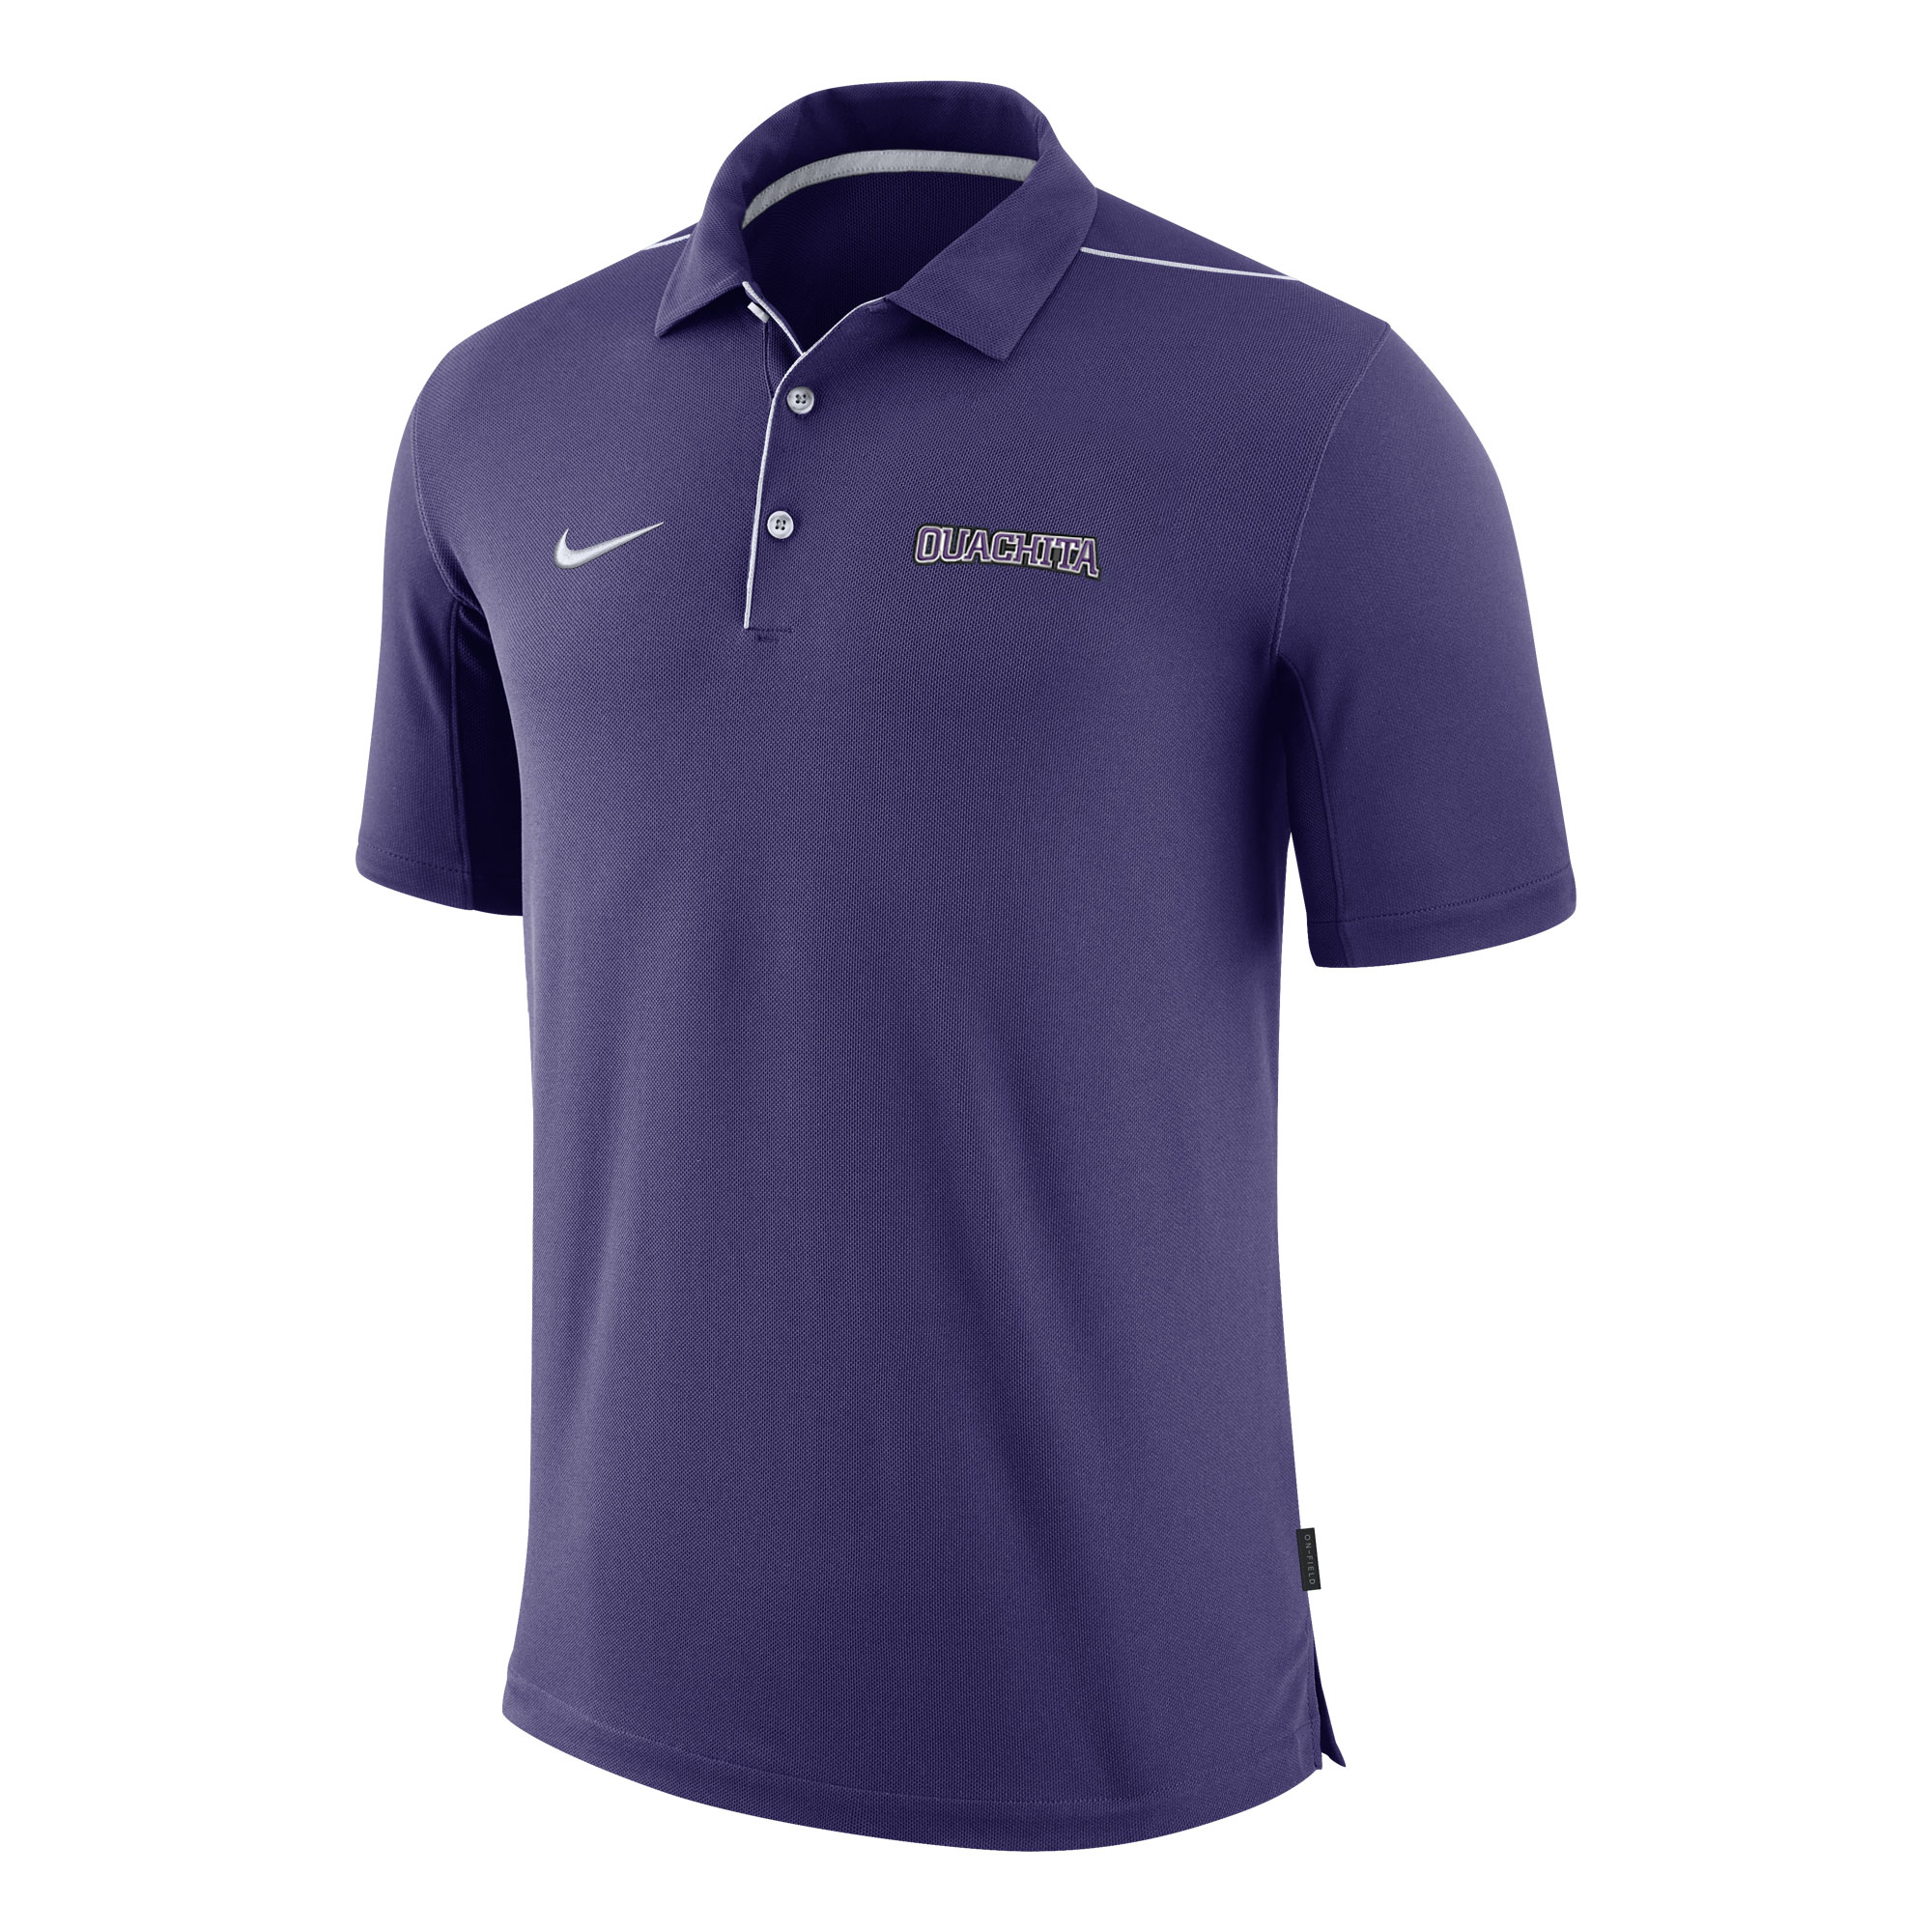 image of: NIKE TEAM ISSUE POLO